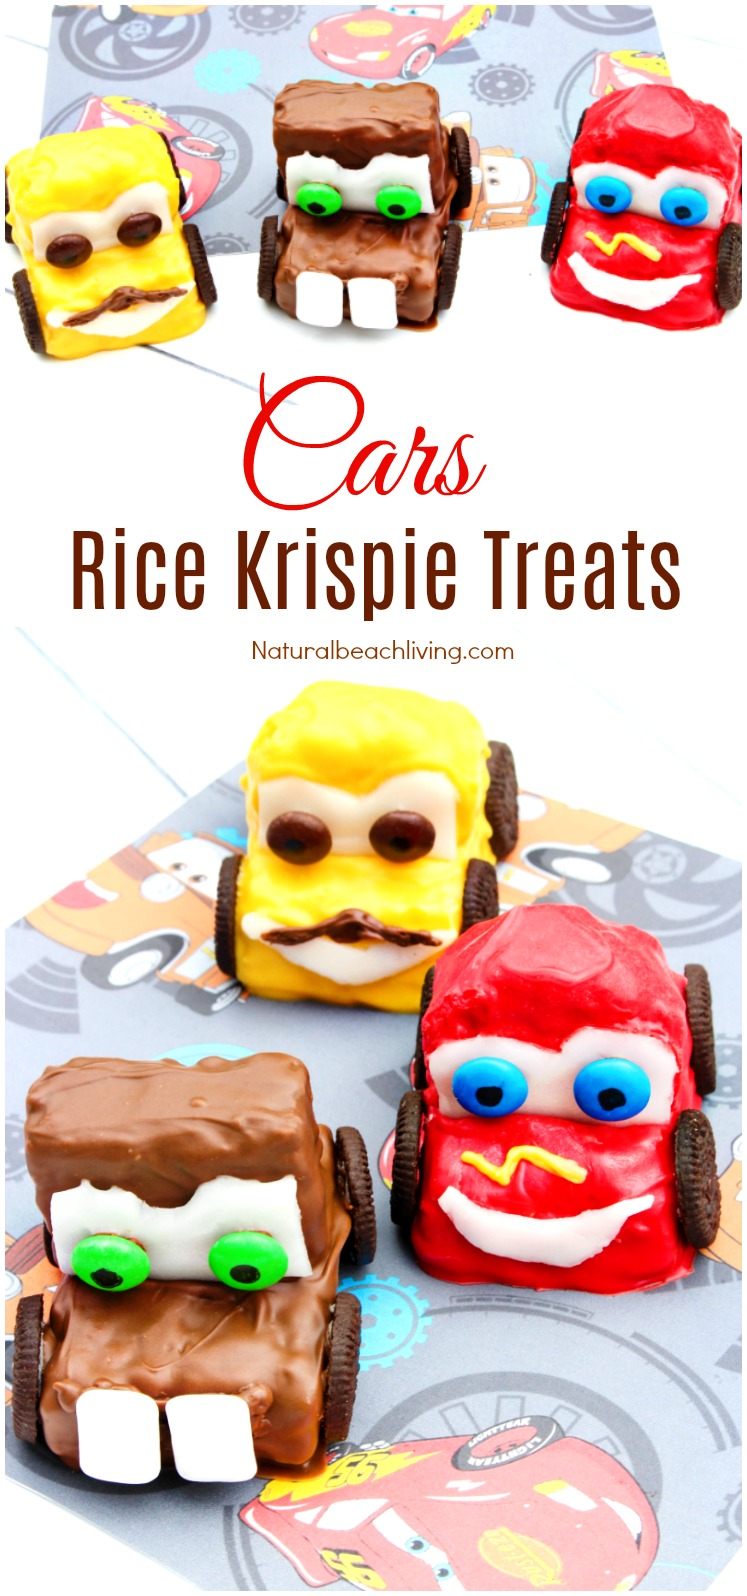 How to Make Disney Cars Rice Krispie Treats Everyone Will Love,Cars 3 Birthday Party ideas, Recipe for Lightning McQueen Rice Krispies Treats, Yum and Fun!